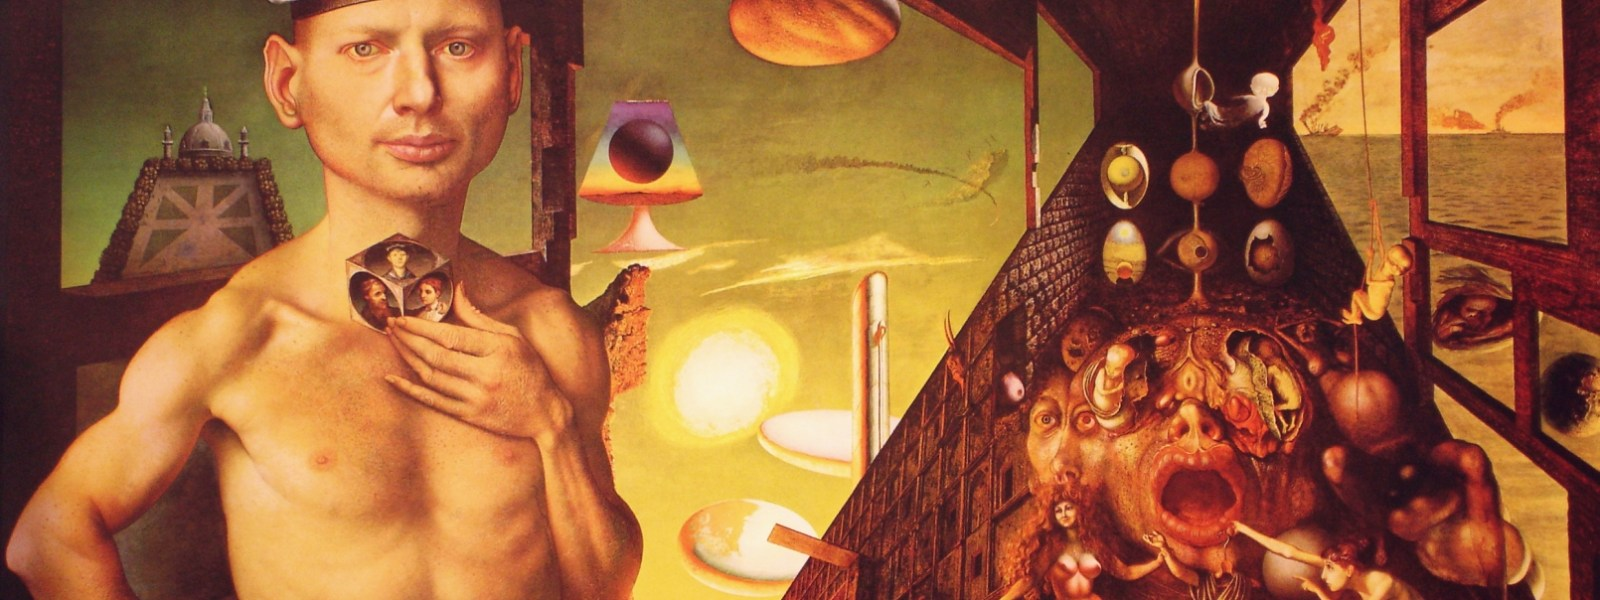 Rudolf Hausner - On Ferenczi's 'Clinical Diary' 1